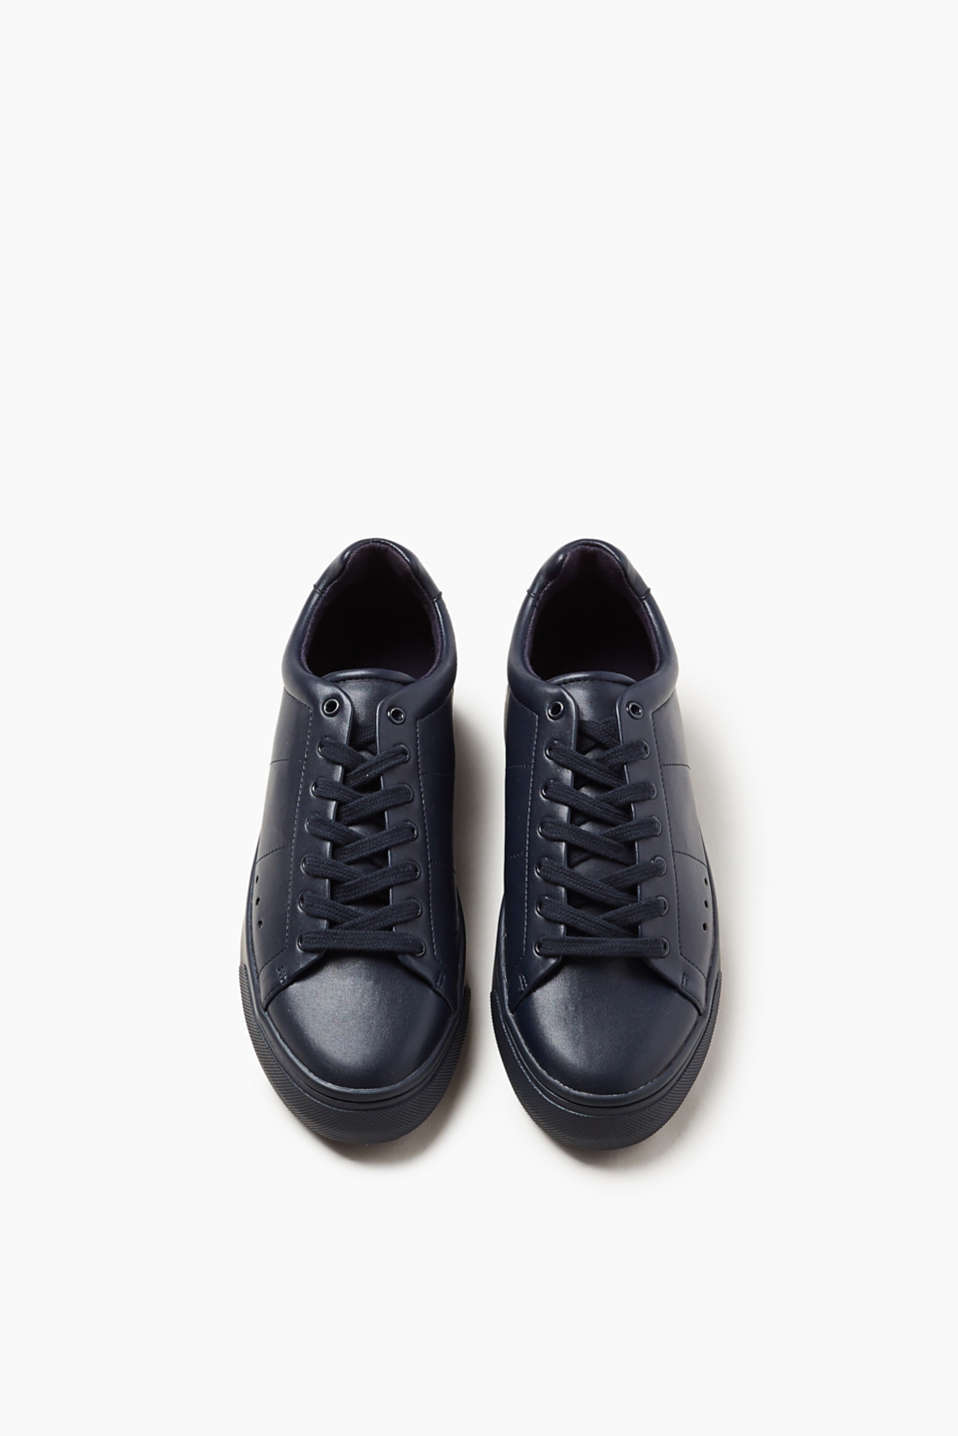 Trend trainers with a flat sole